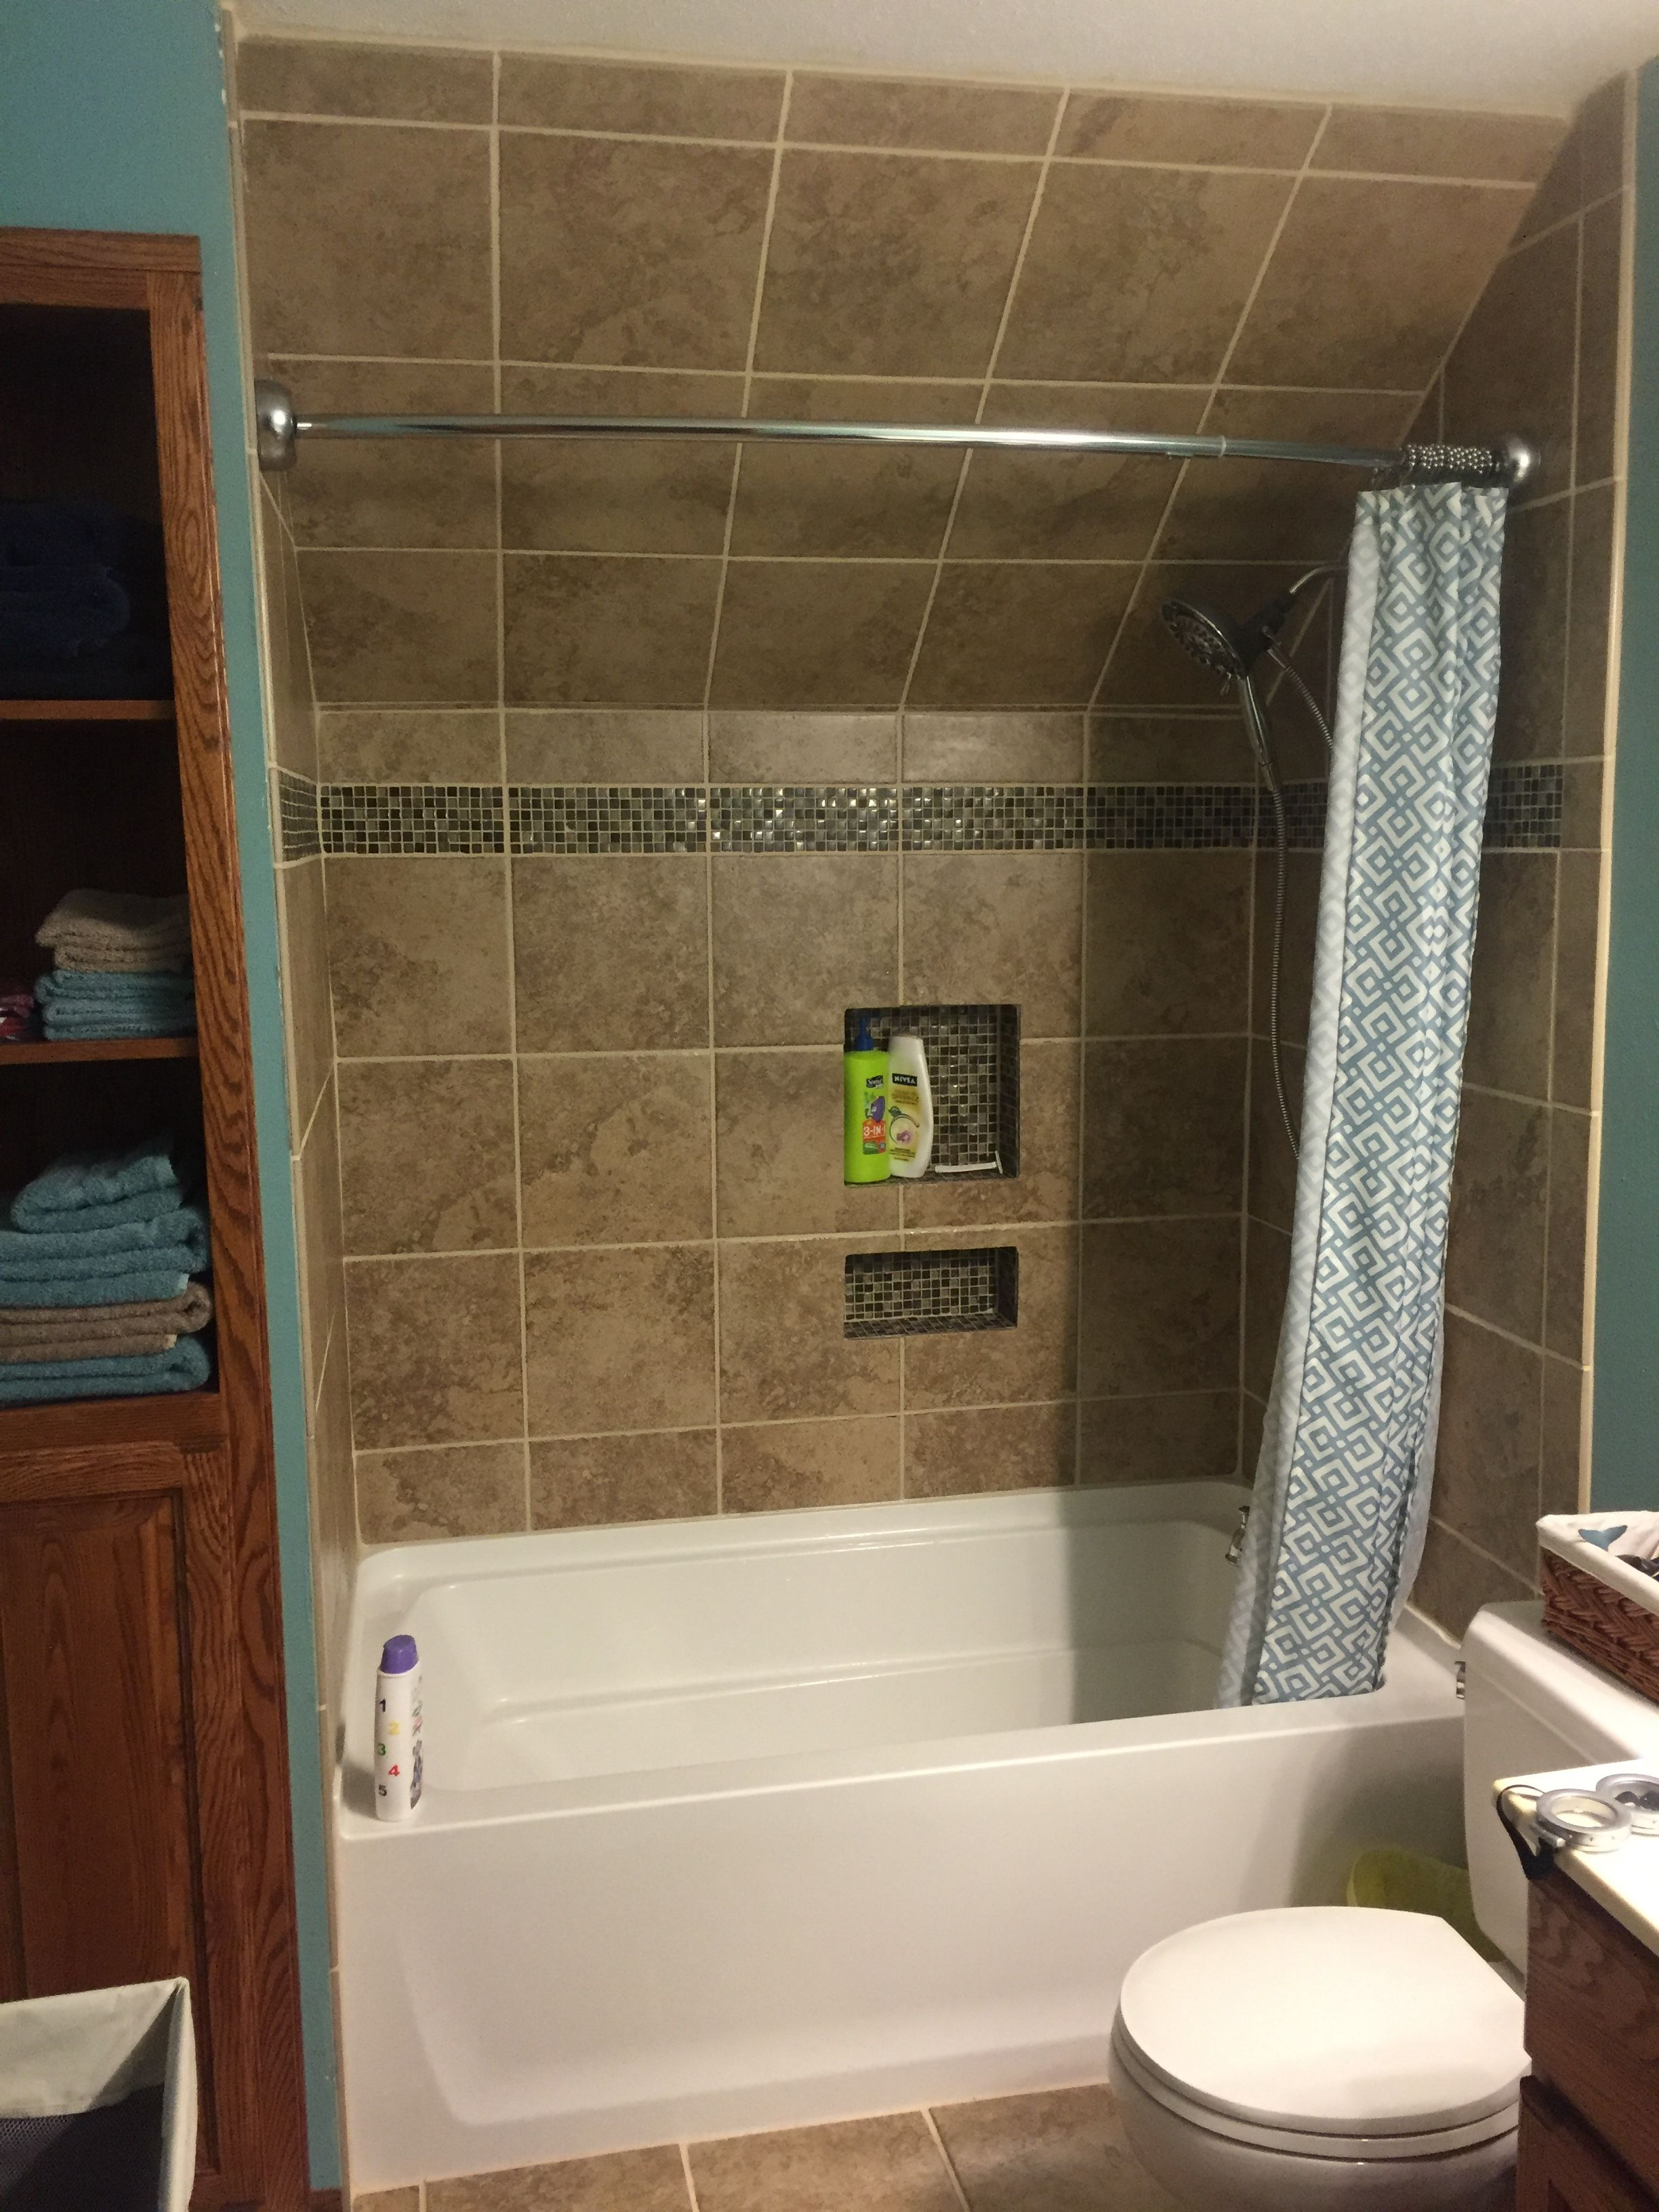 Upstairs Bathroom With Slanted Or Sloped Ceilings